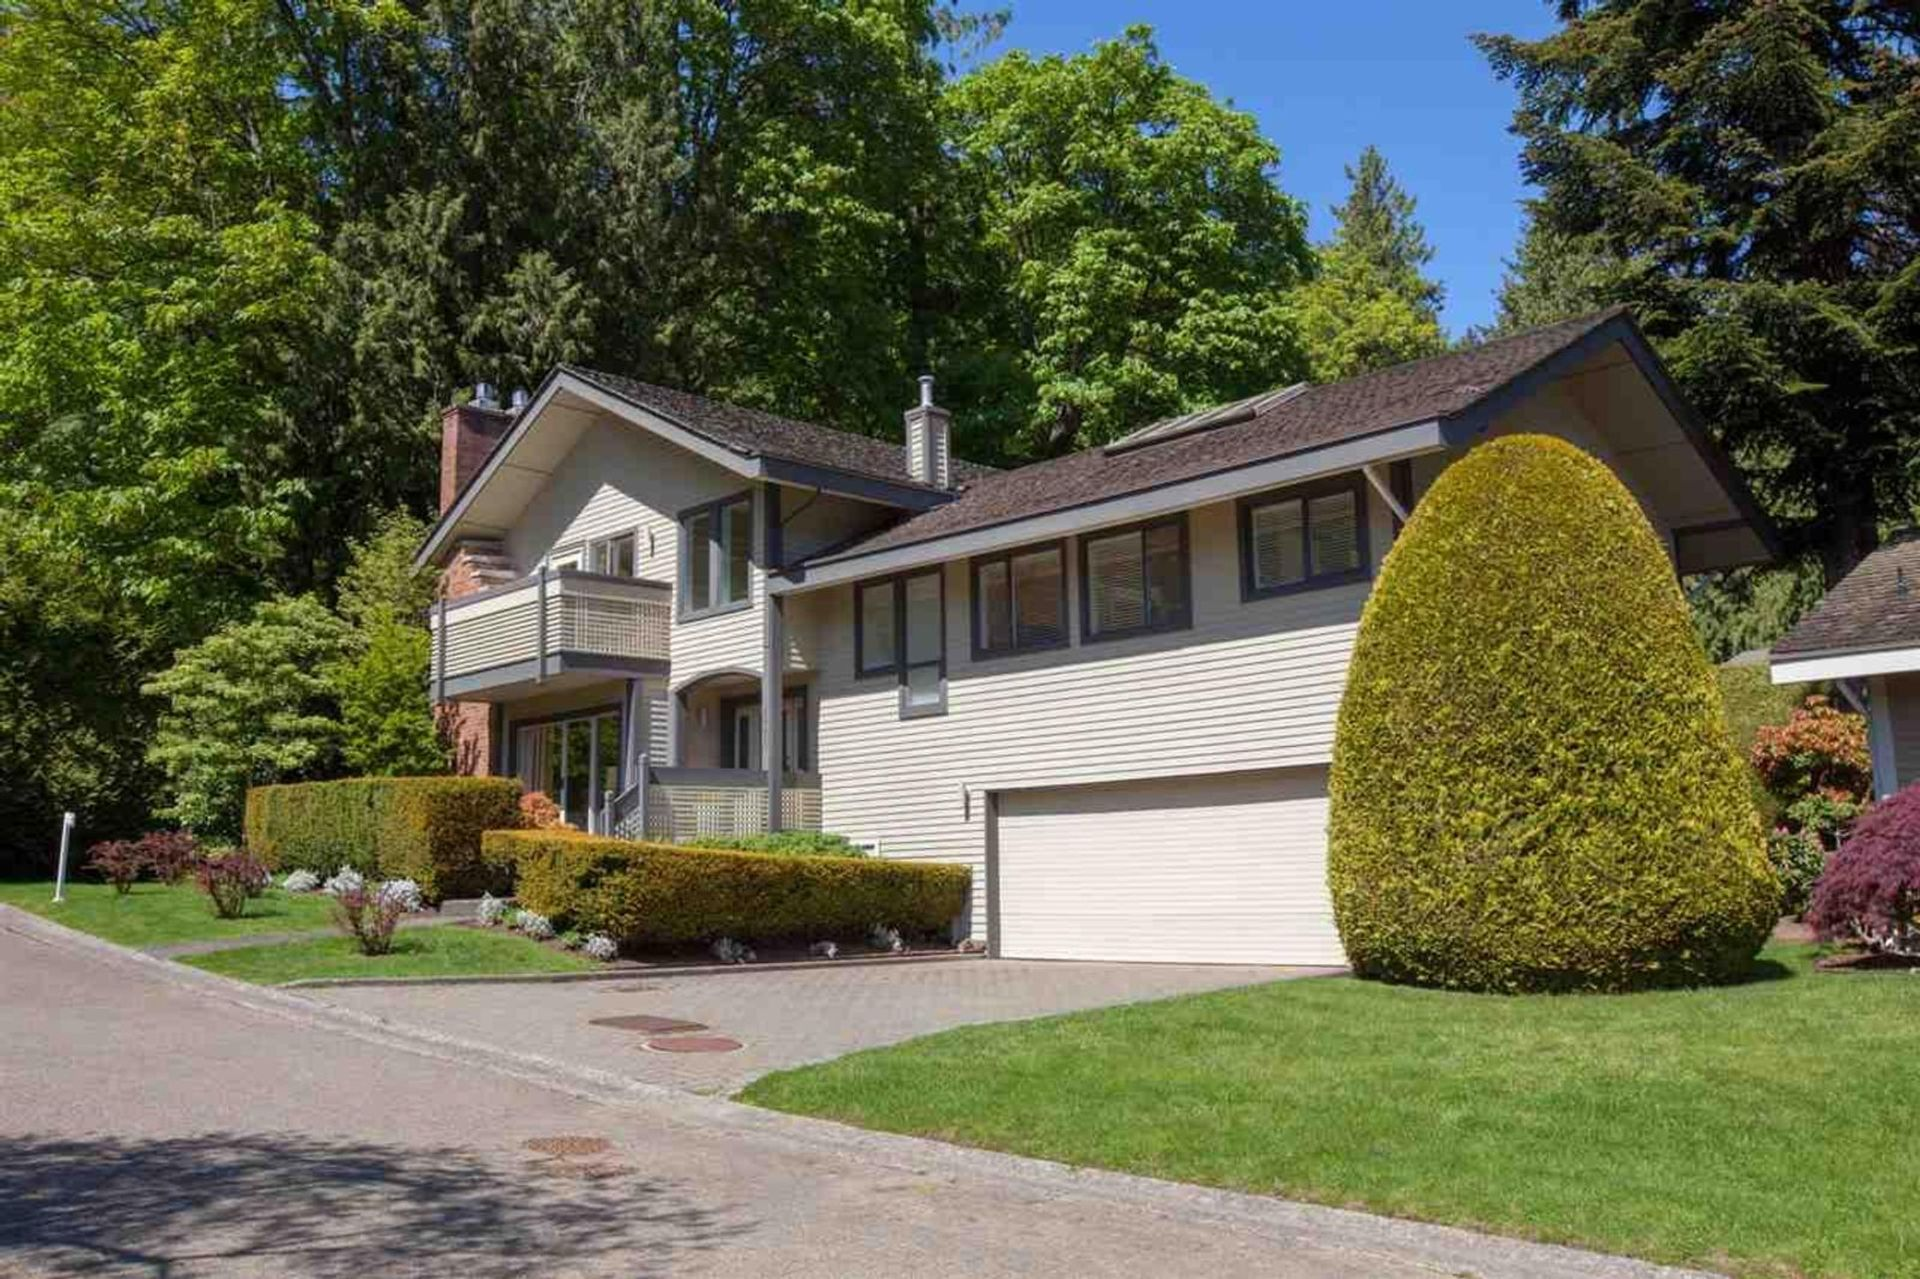 6529 Odlum Court, Whytecliff, West Vancouver photo number 1